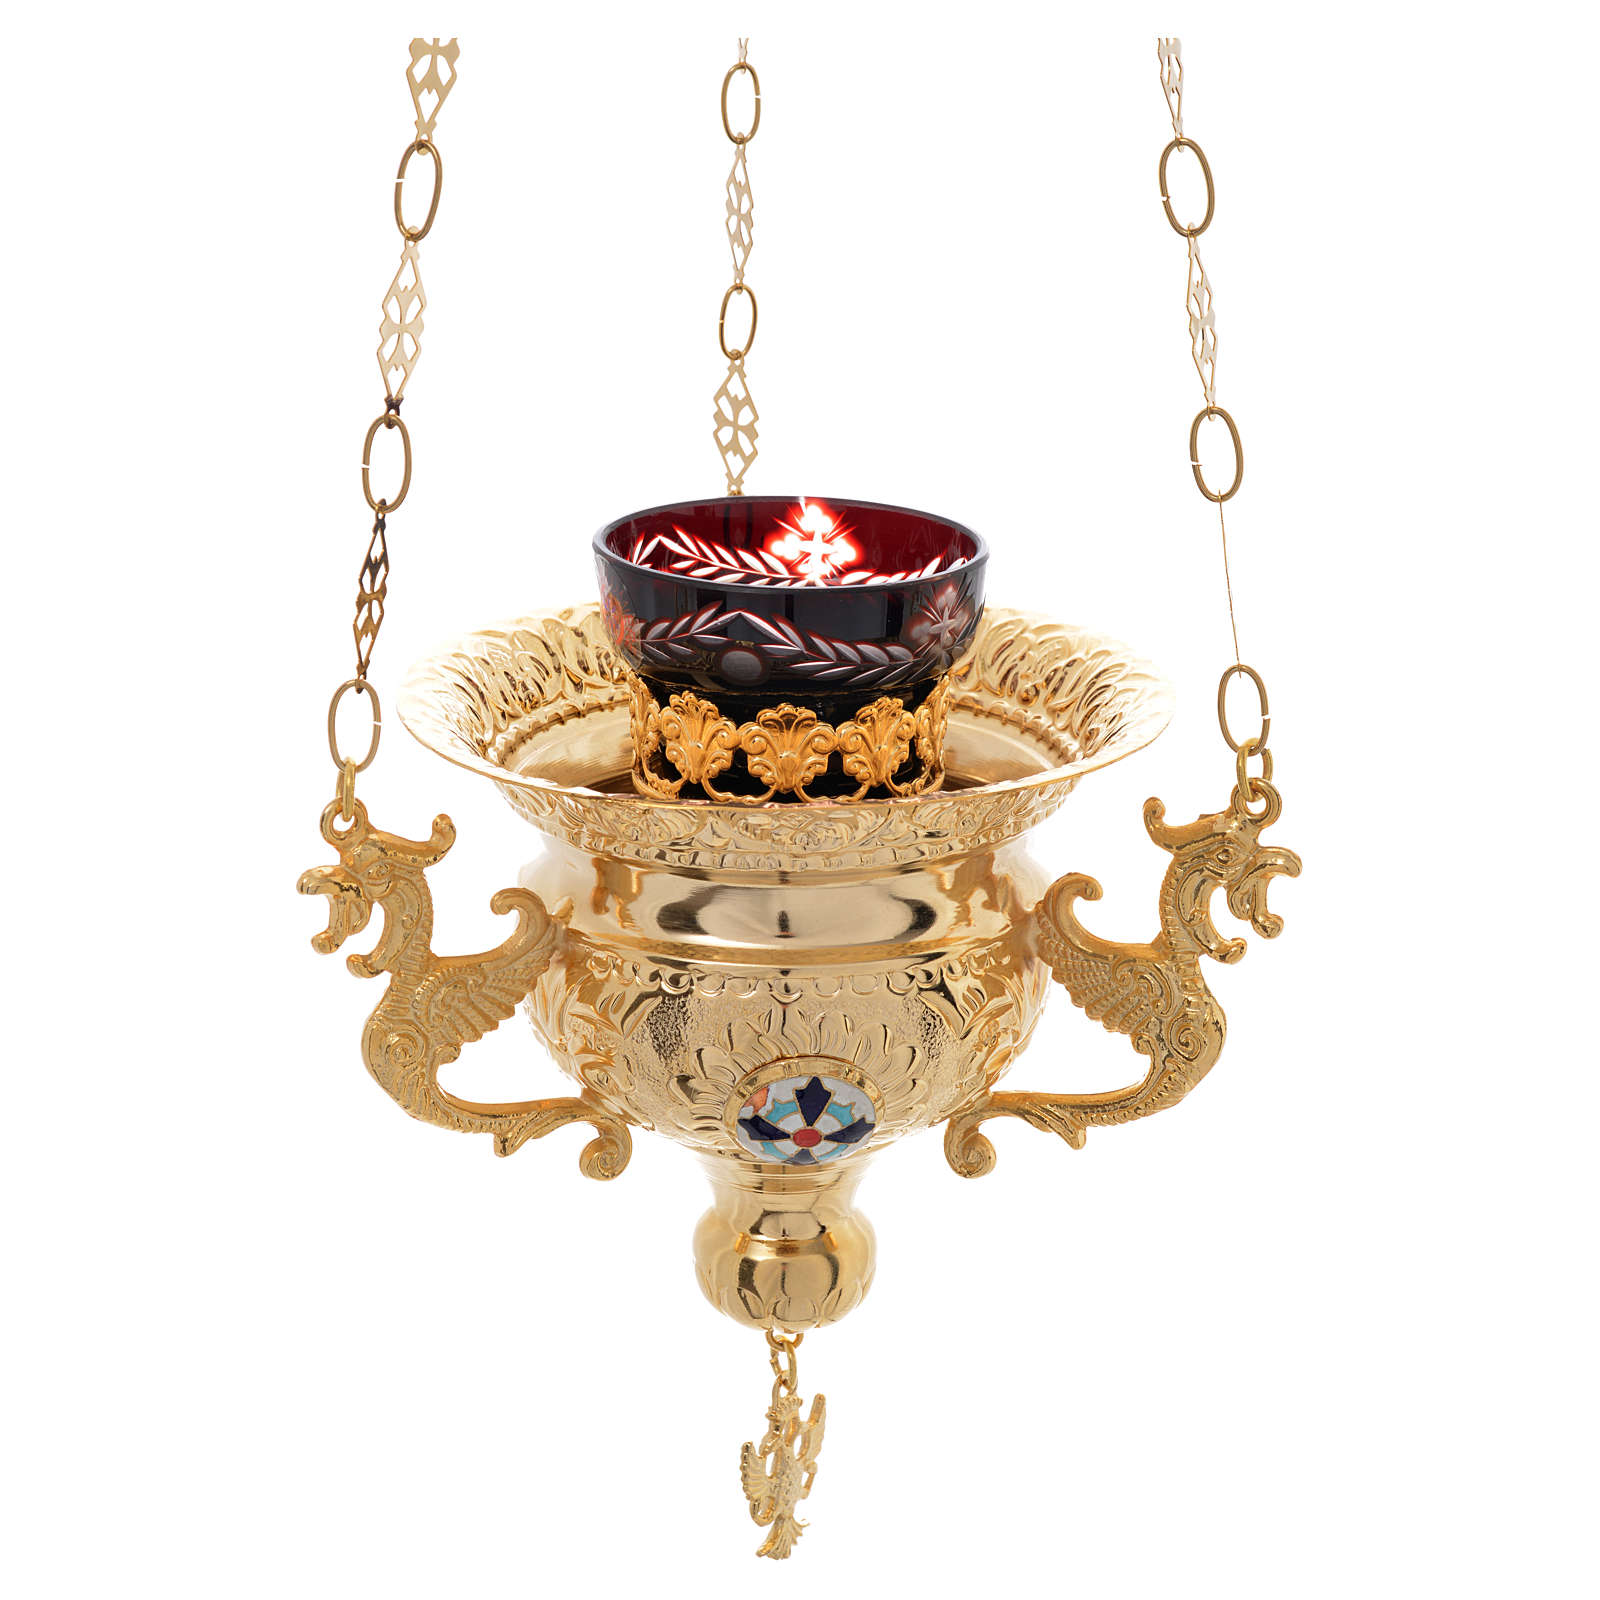 Orthodoxe Lampe aus Messing 15x15cm 3